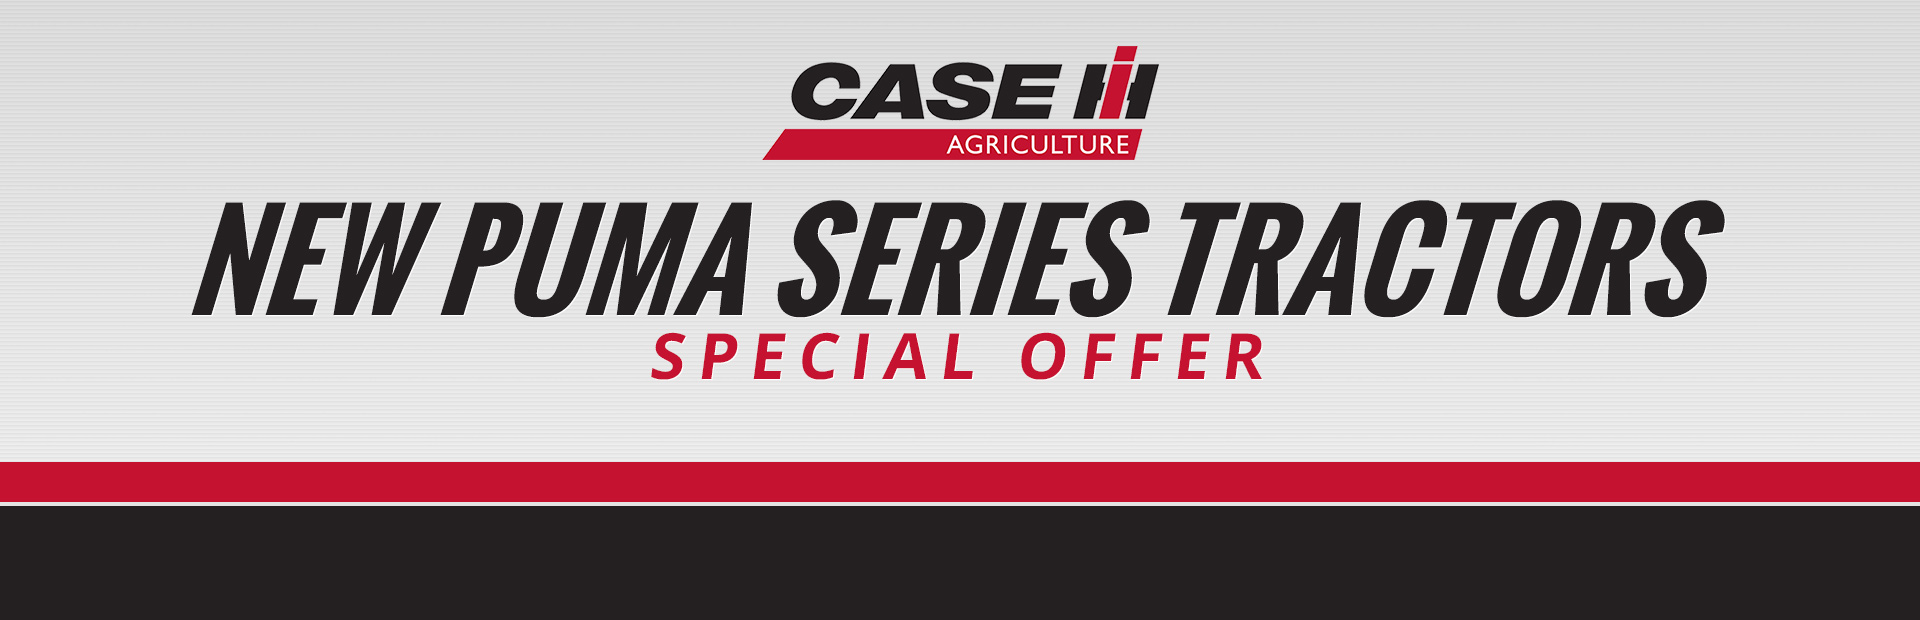 Case IH: New Puma Series Tractors Special Offer